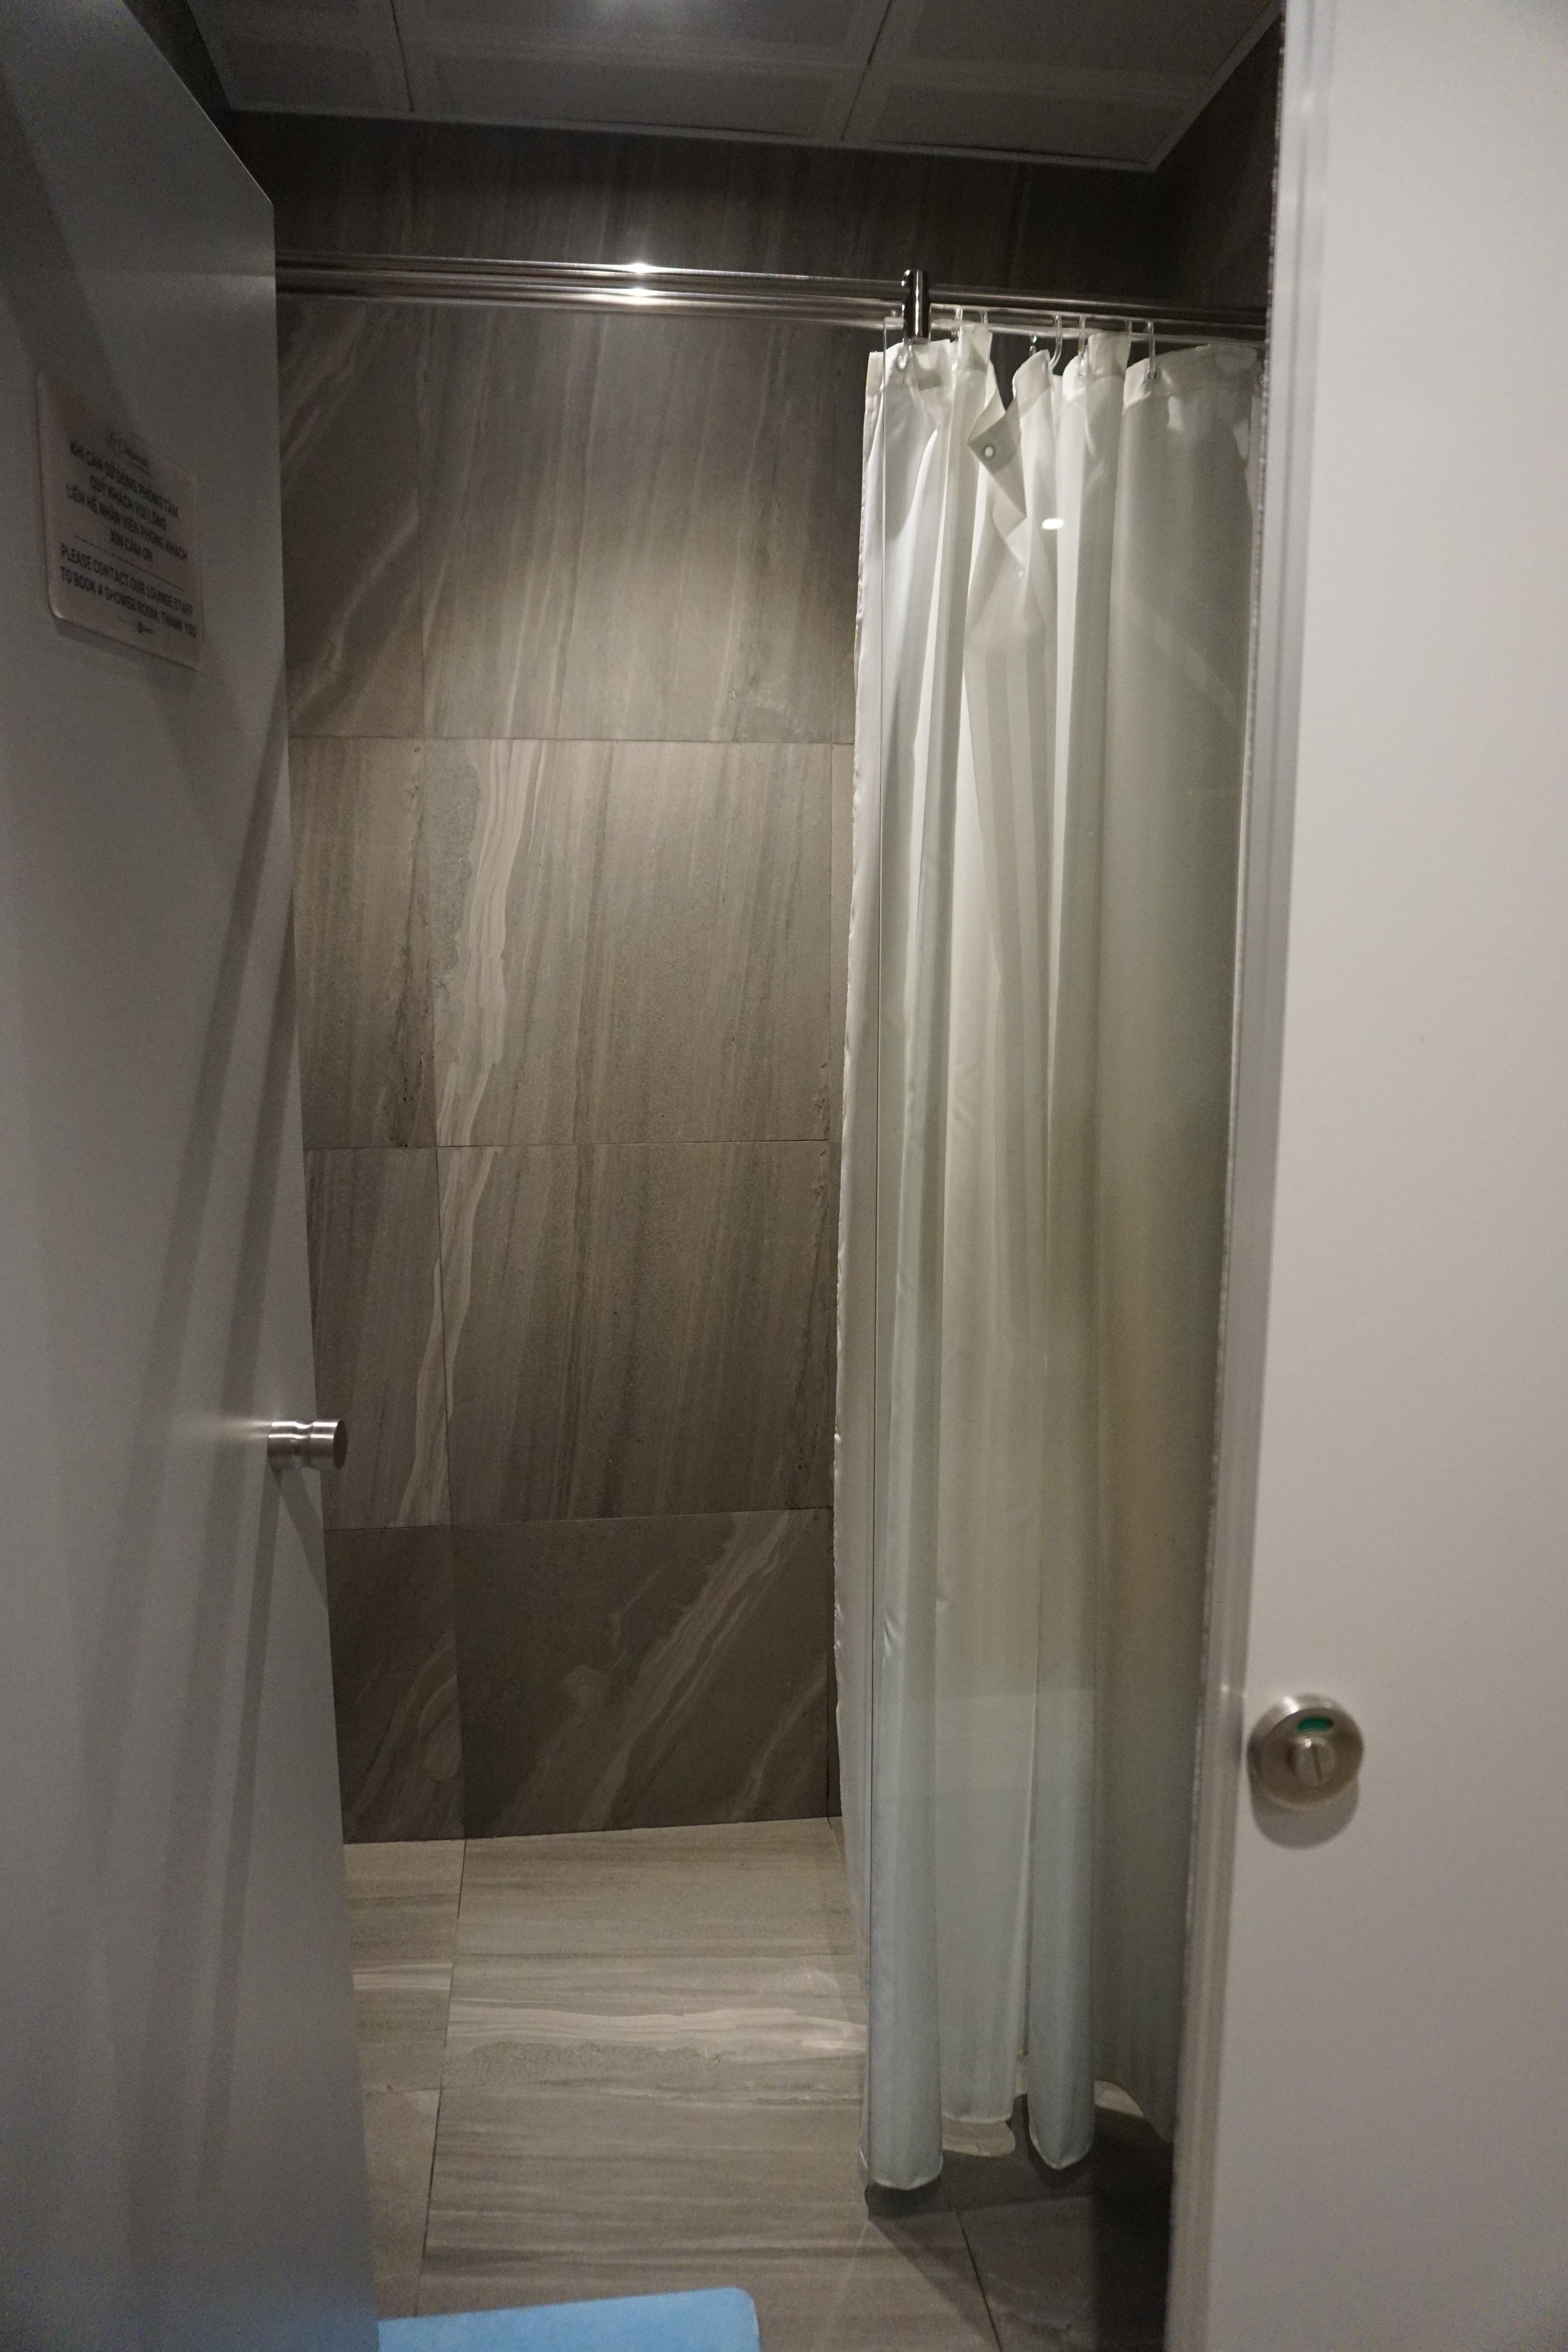 Showers are also available for use